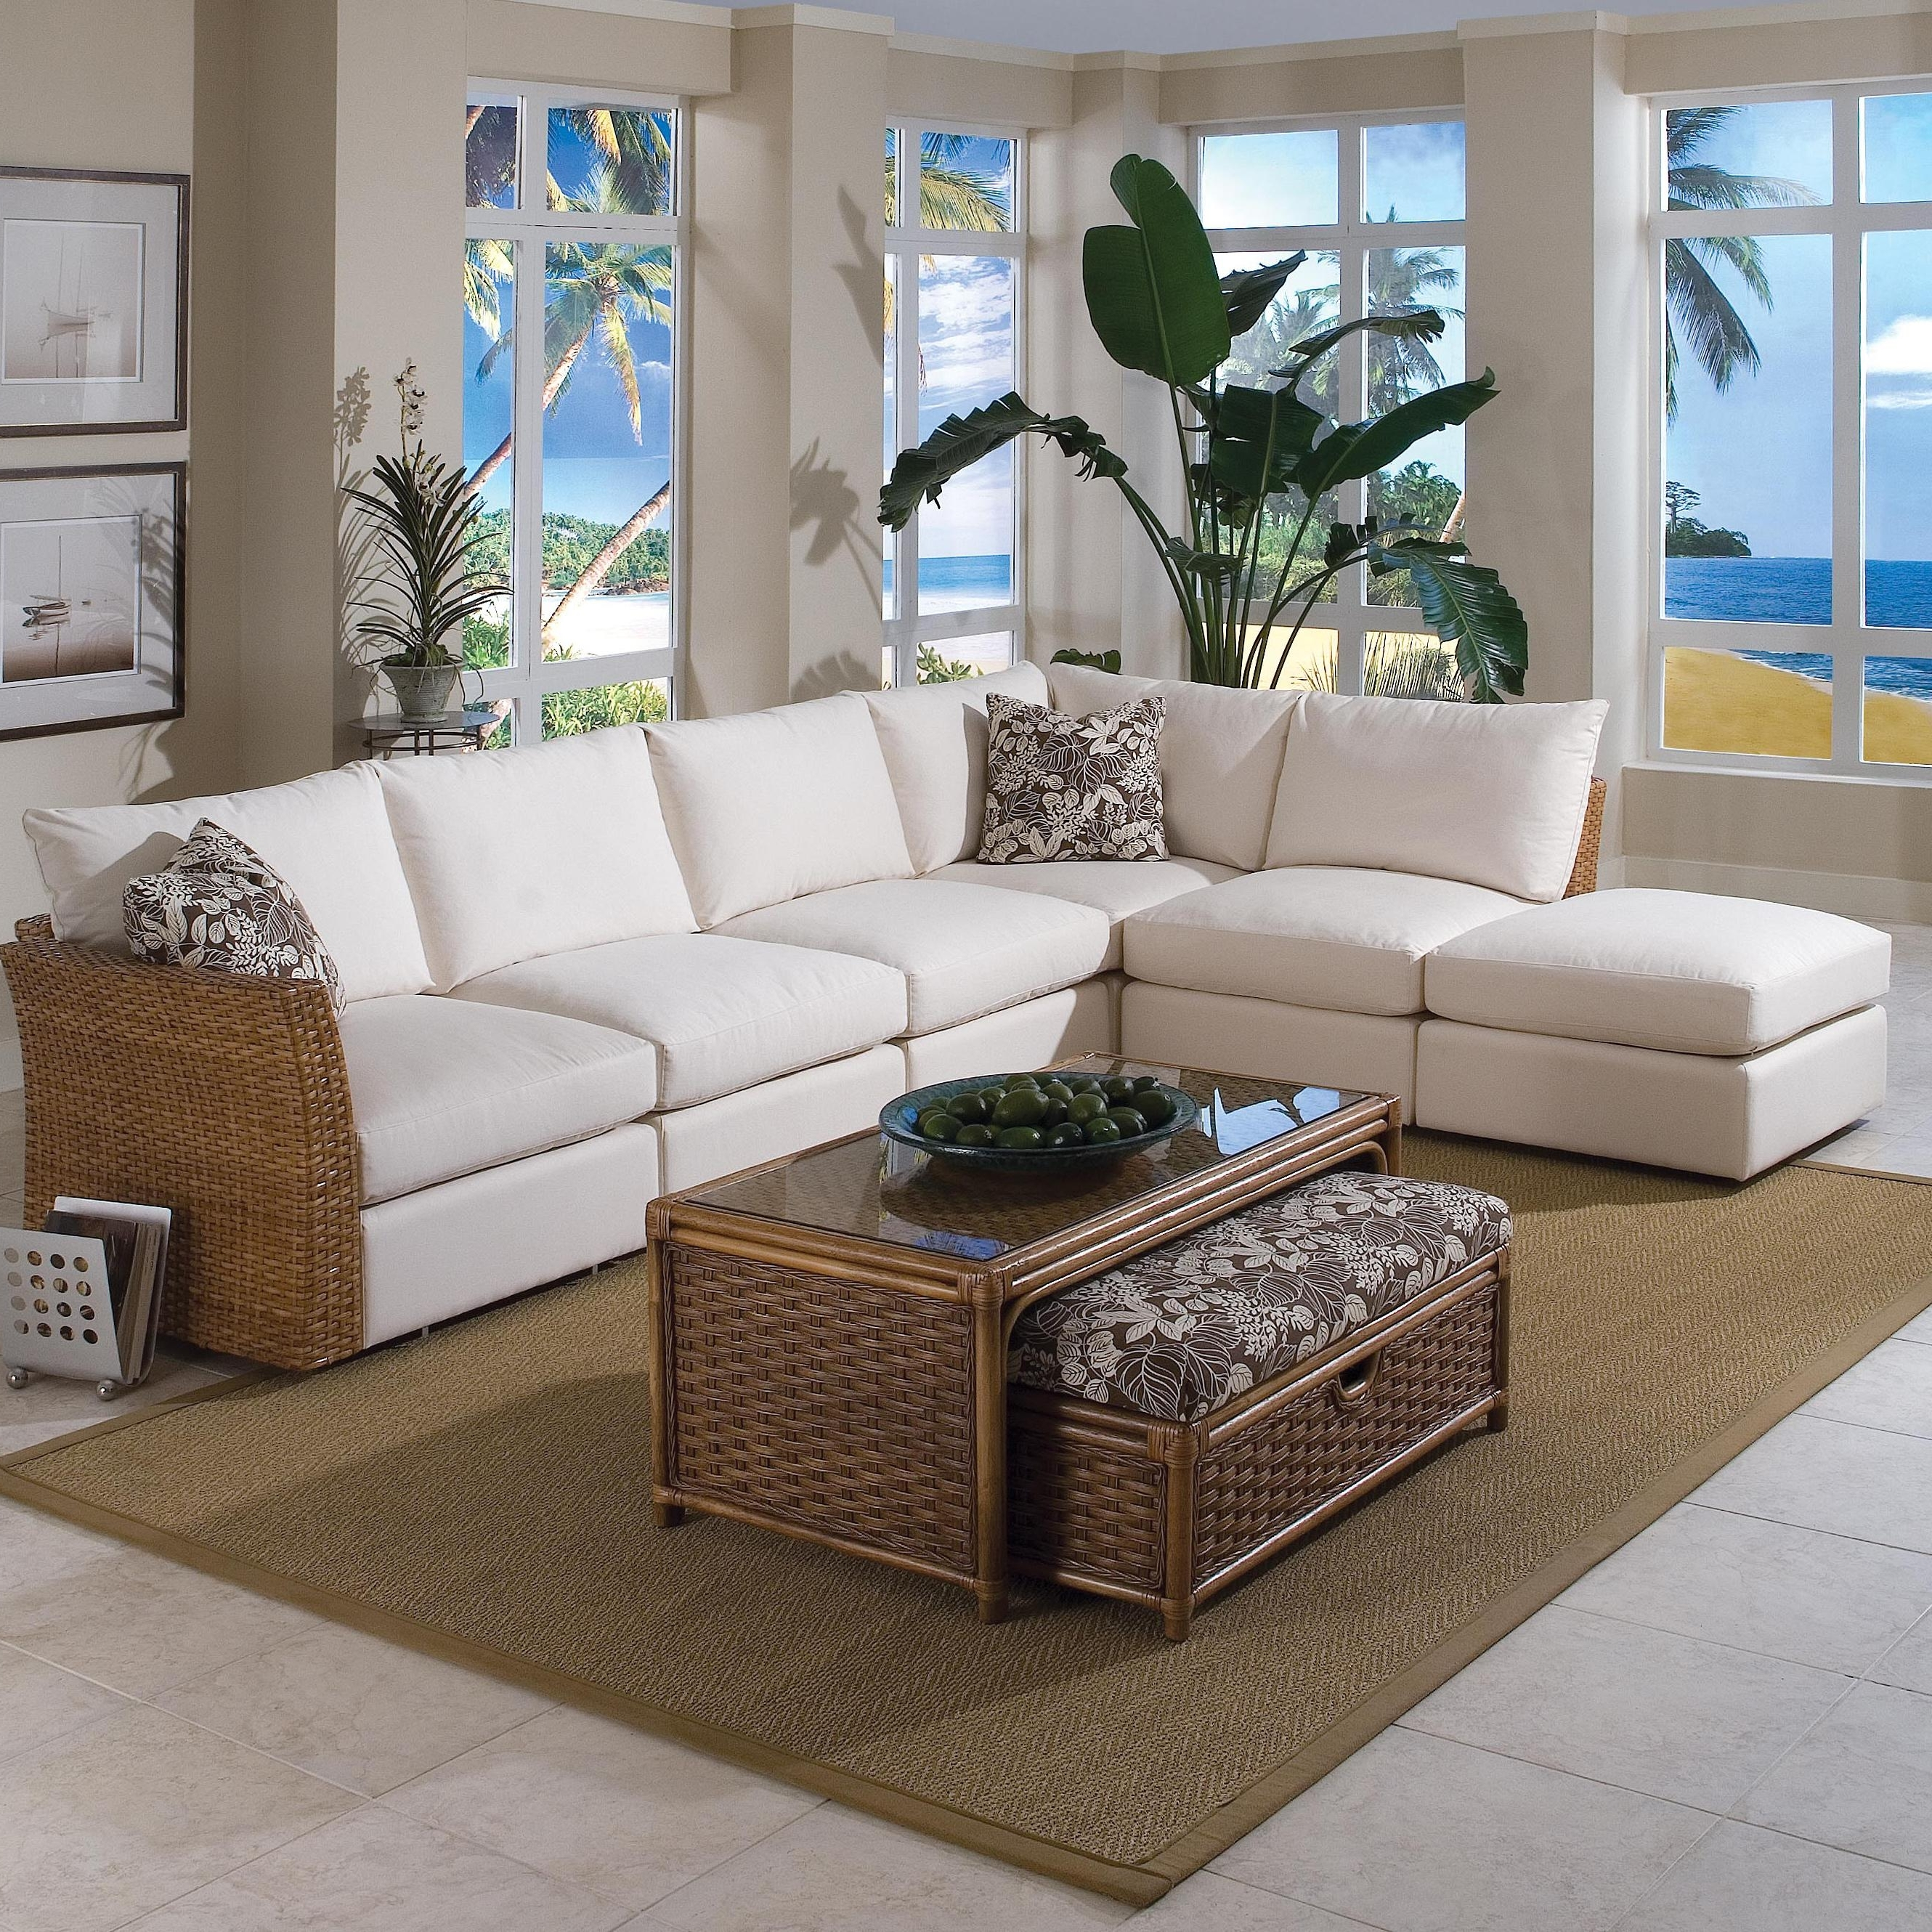 Braxton Culler Grand Water Point Tropical Sectional Sofa With Two Throughout Well Liked Sectional Sofas In Savannah Ga (View 16 of 20)